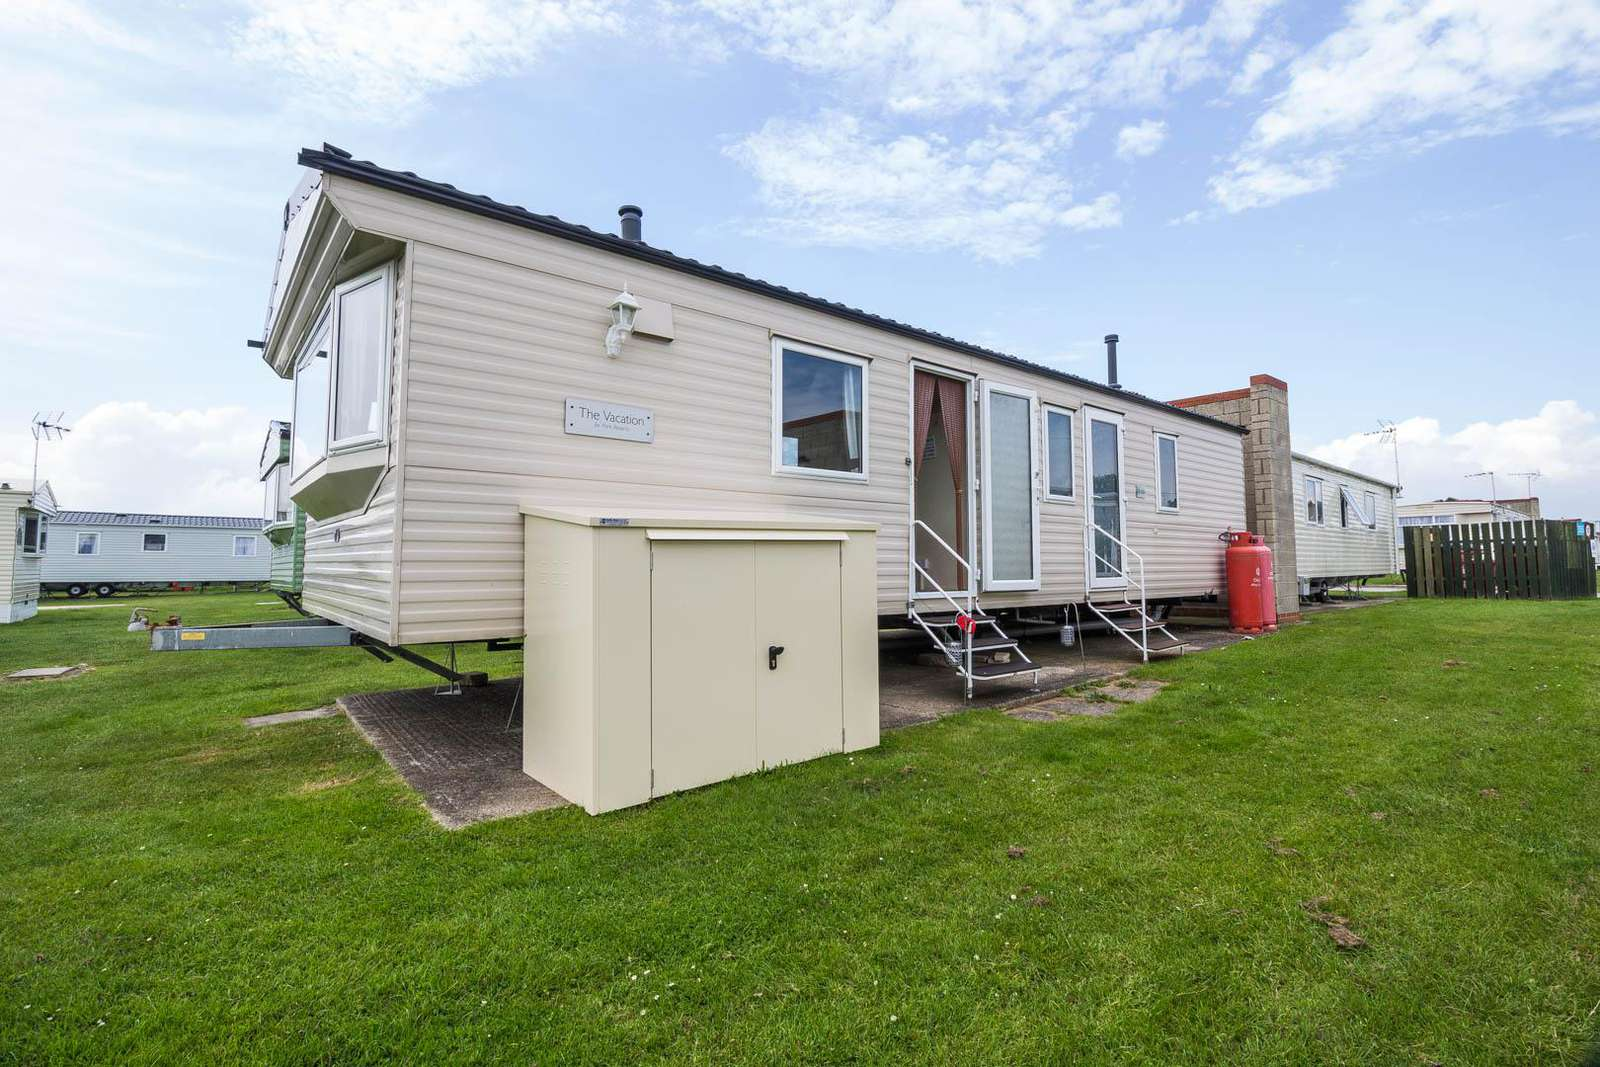 17003C – Conifers area, 2 bed, 6 berth caravan with double glazing. Emerald rated. - property